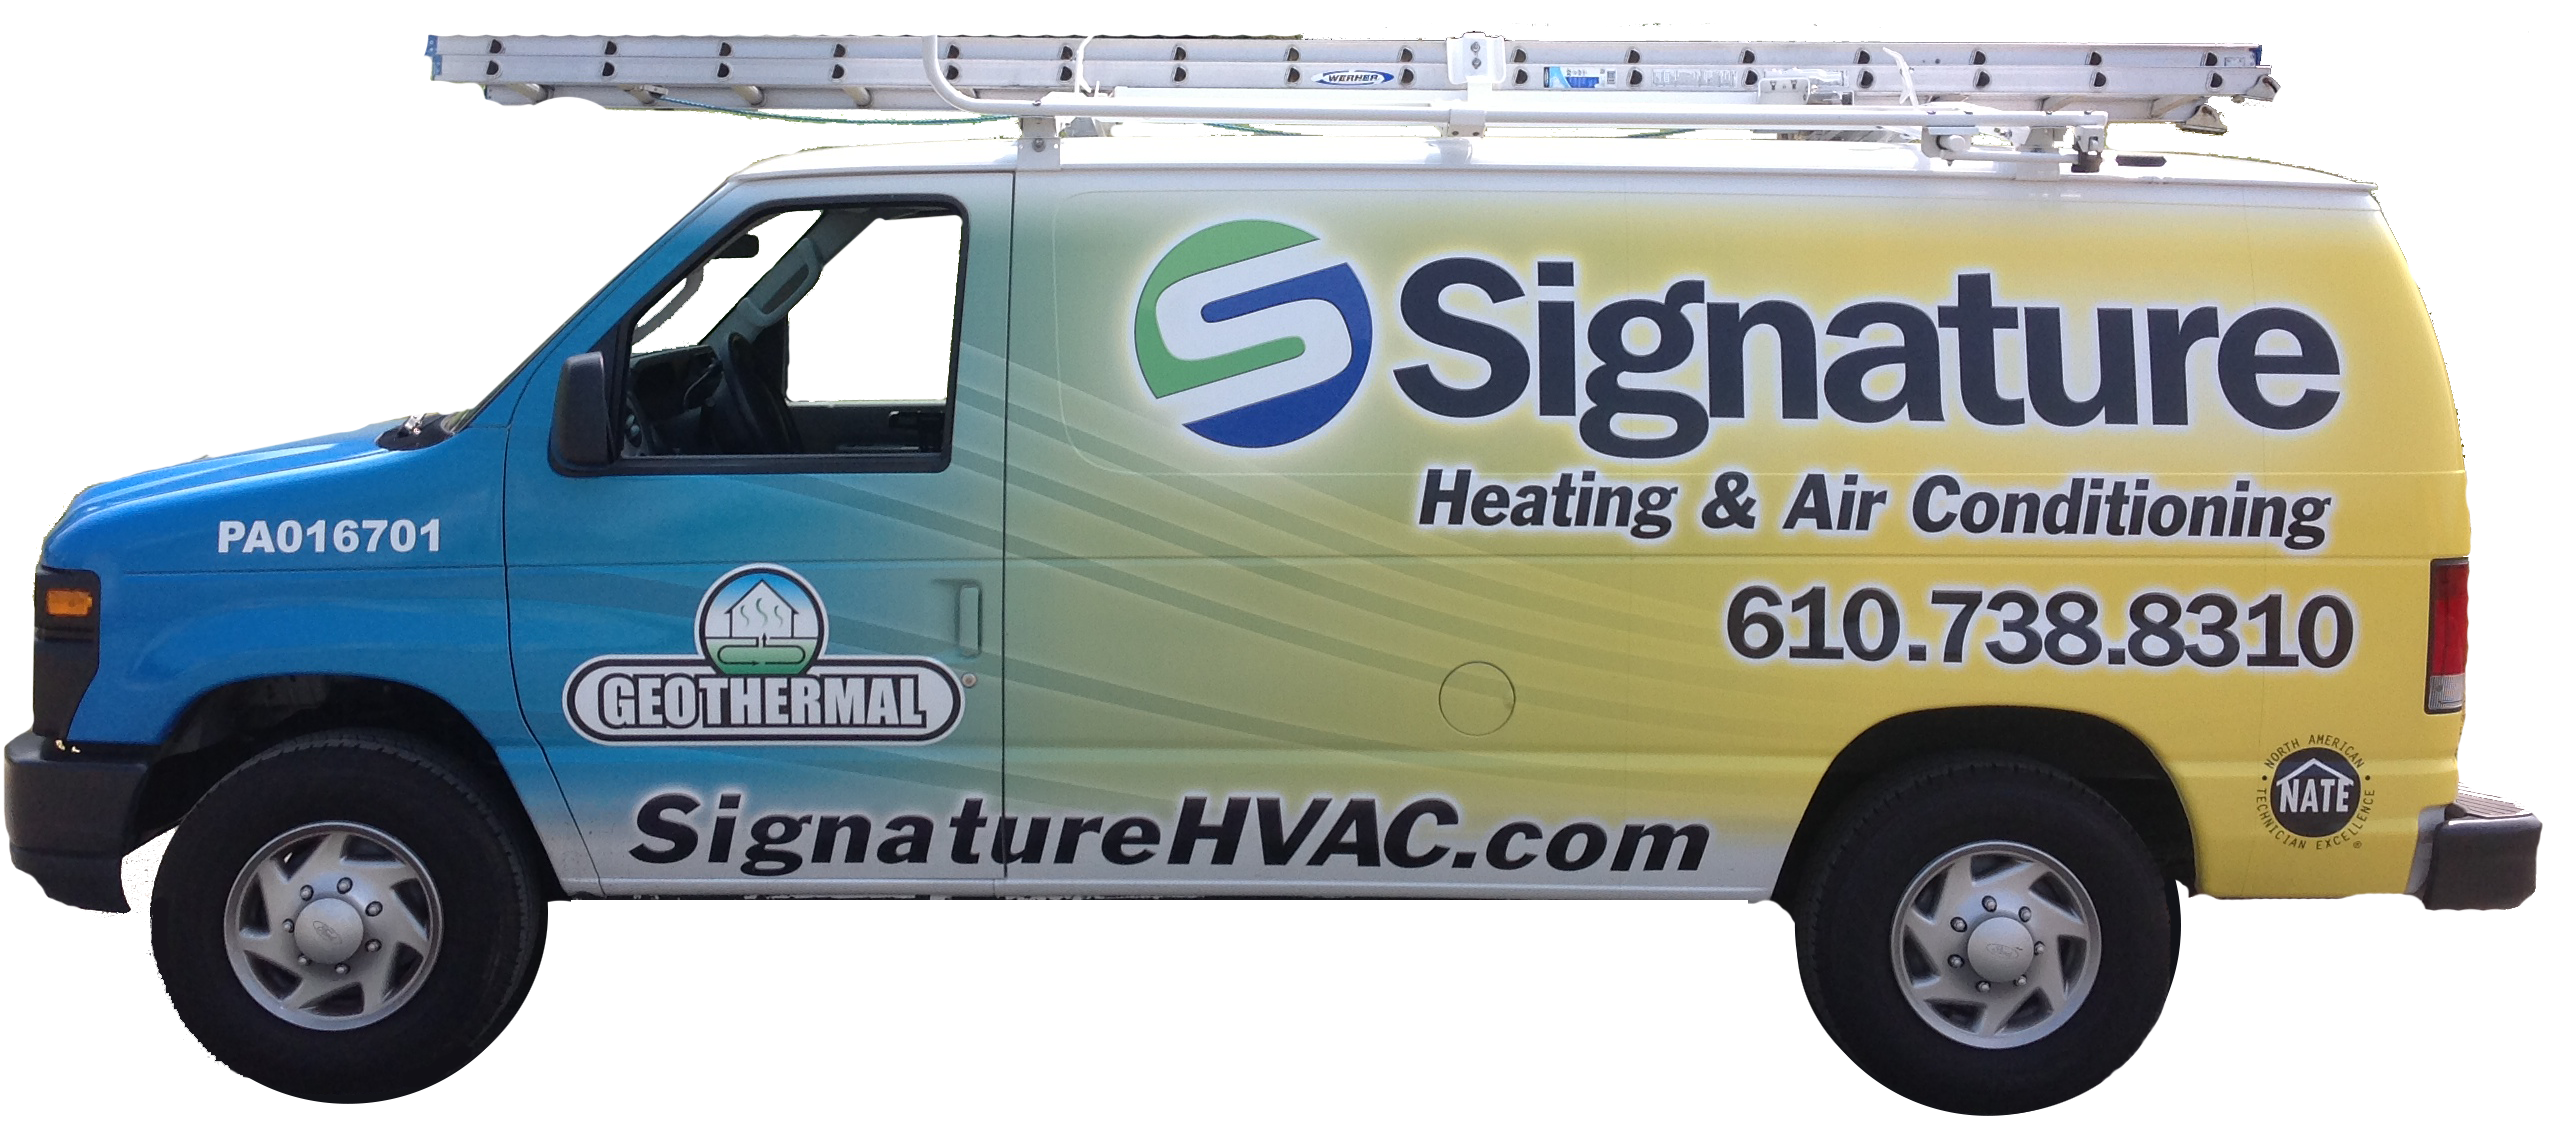 Signature Hvac Giving Away 20 000 System In Sweepstakes